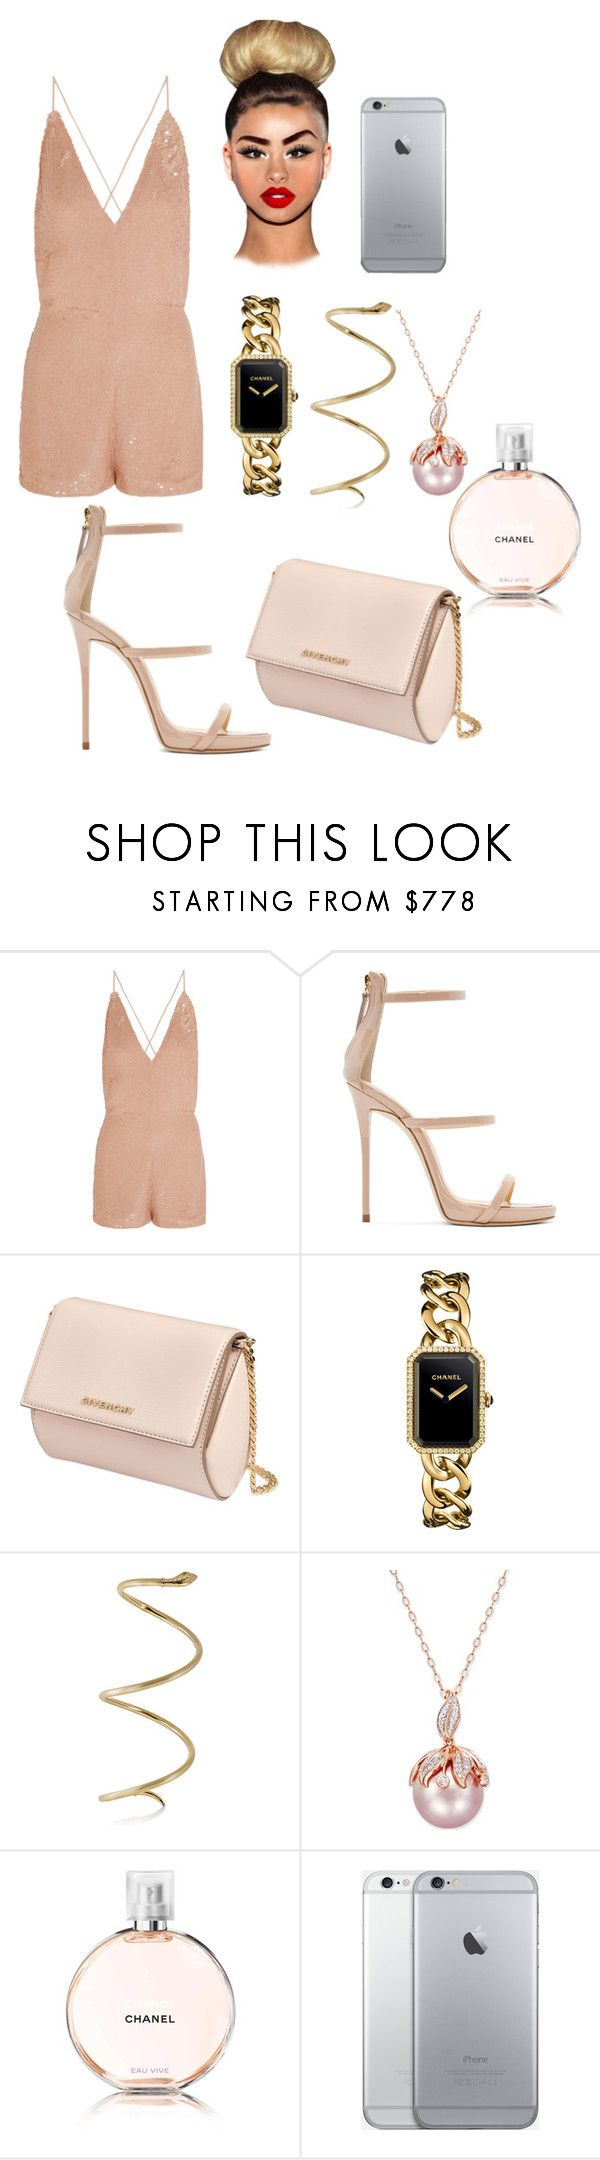 """""""Tenue#278"""" by hymalaya ❤ liked on Polyvore featuring Valentino, Giuseppe Zanotti, Givenchy and Chanel"""